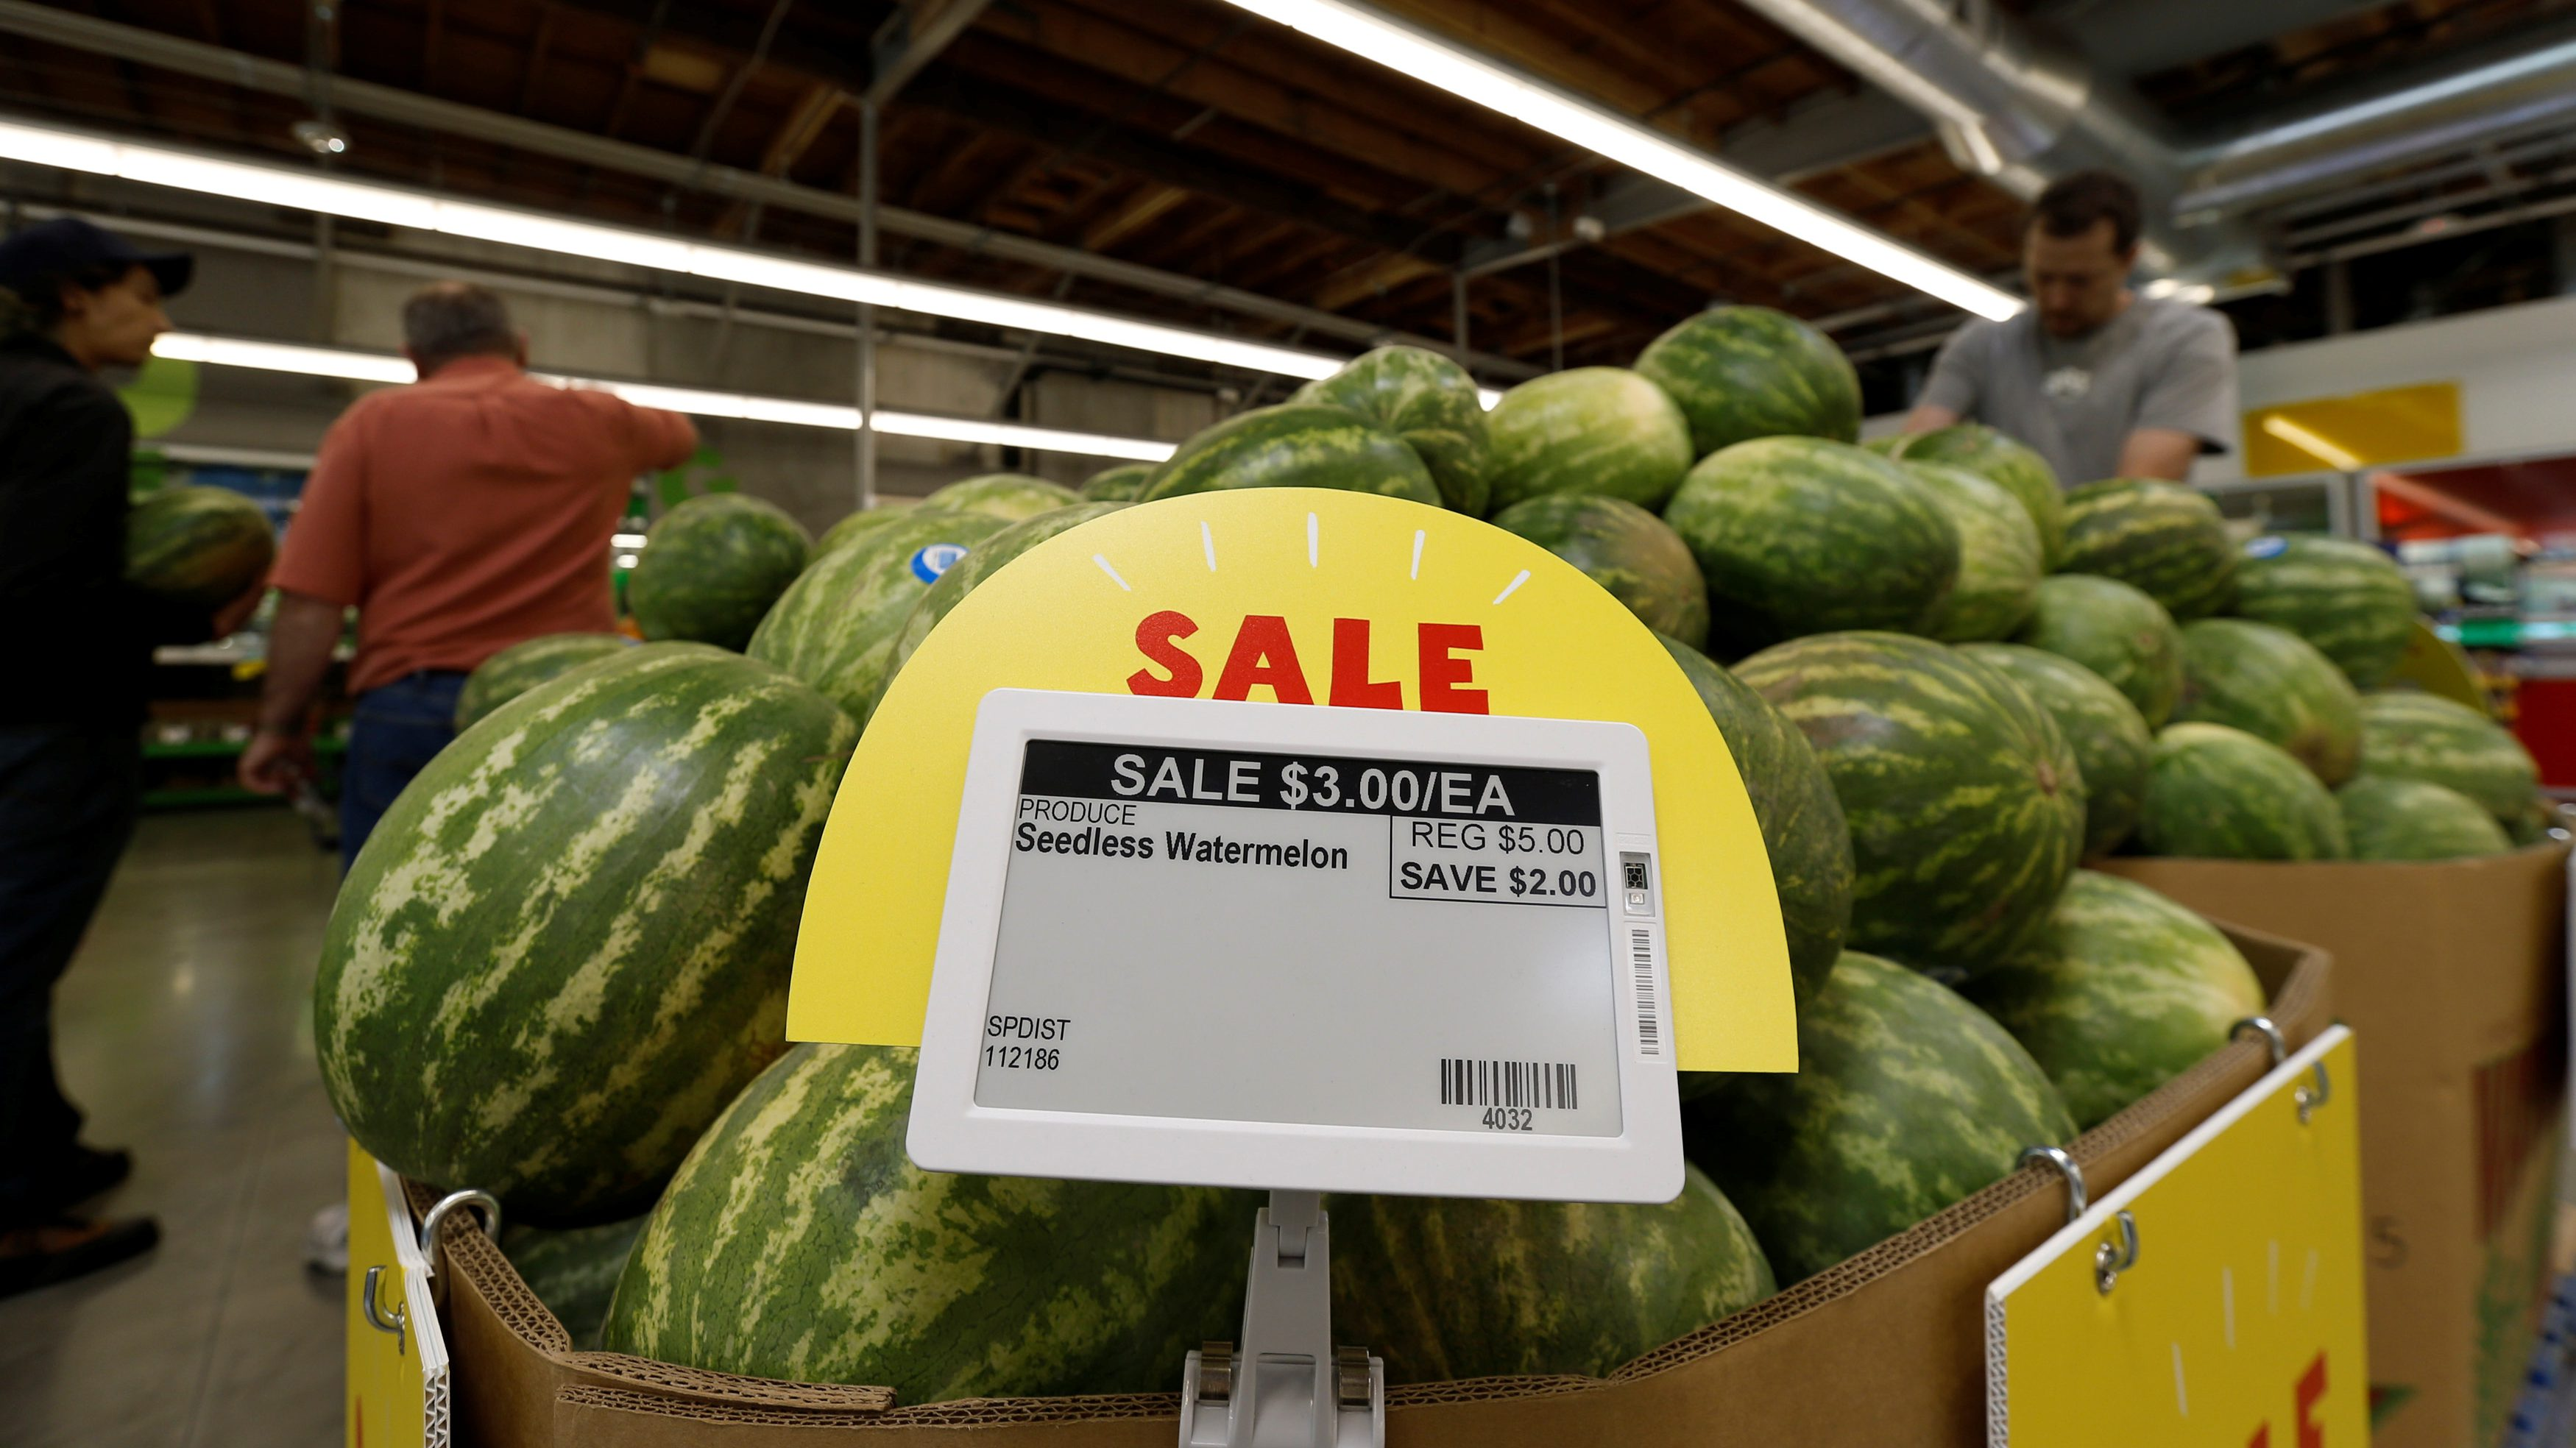 Watermelon prices are displayed on a digital price tag at a 365 by Whole Foods Market grocery store ahead of its opening day in Los Angeles, U.S., May 24, 2016. REUTERS/Mario Anzuoni - RTSFTZ3